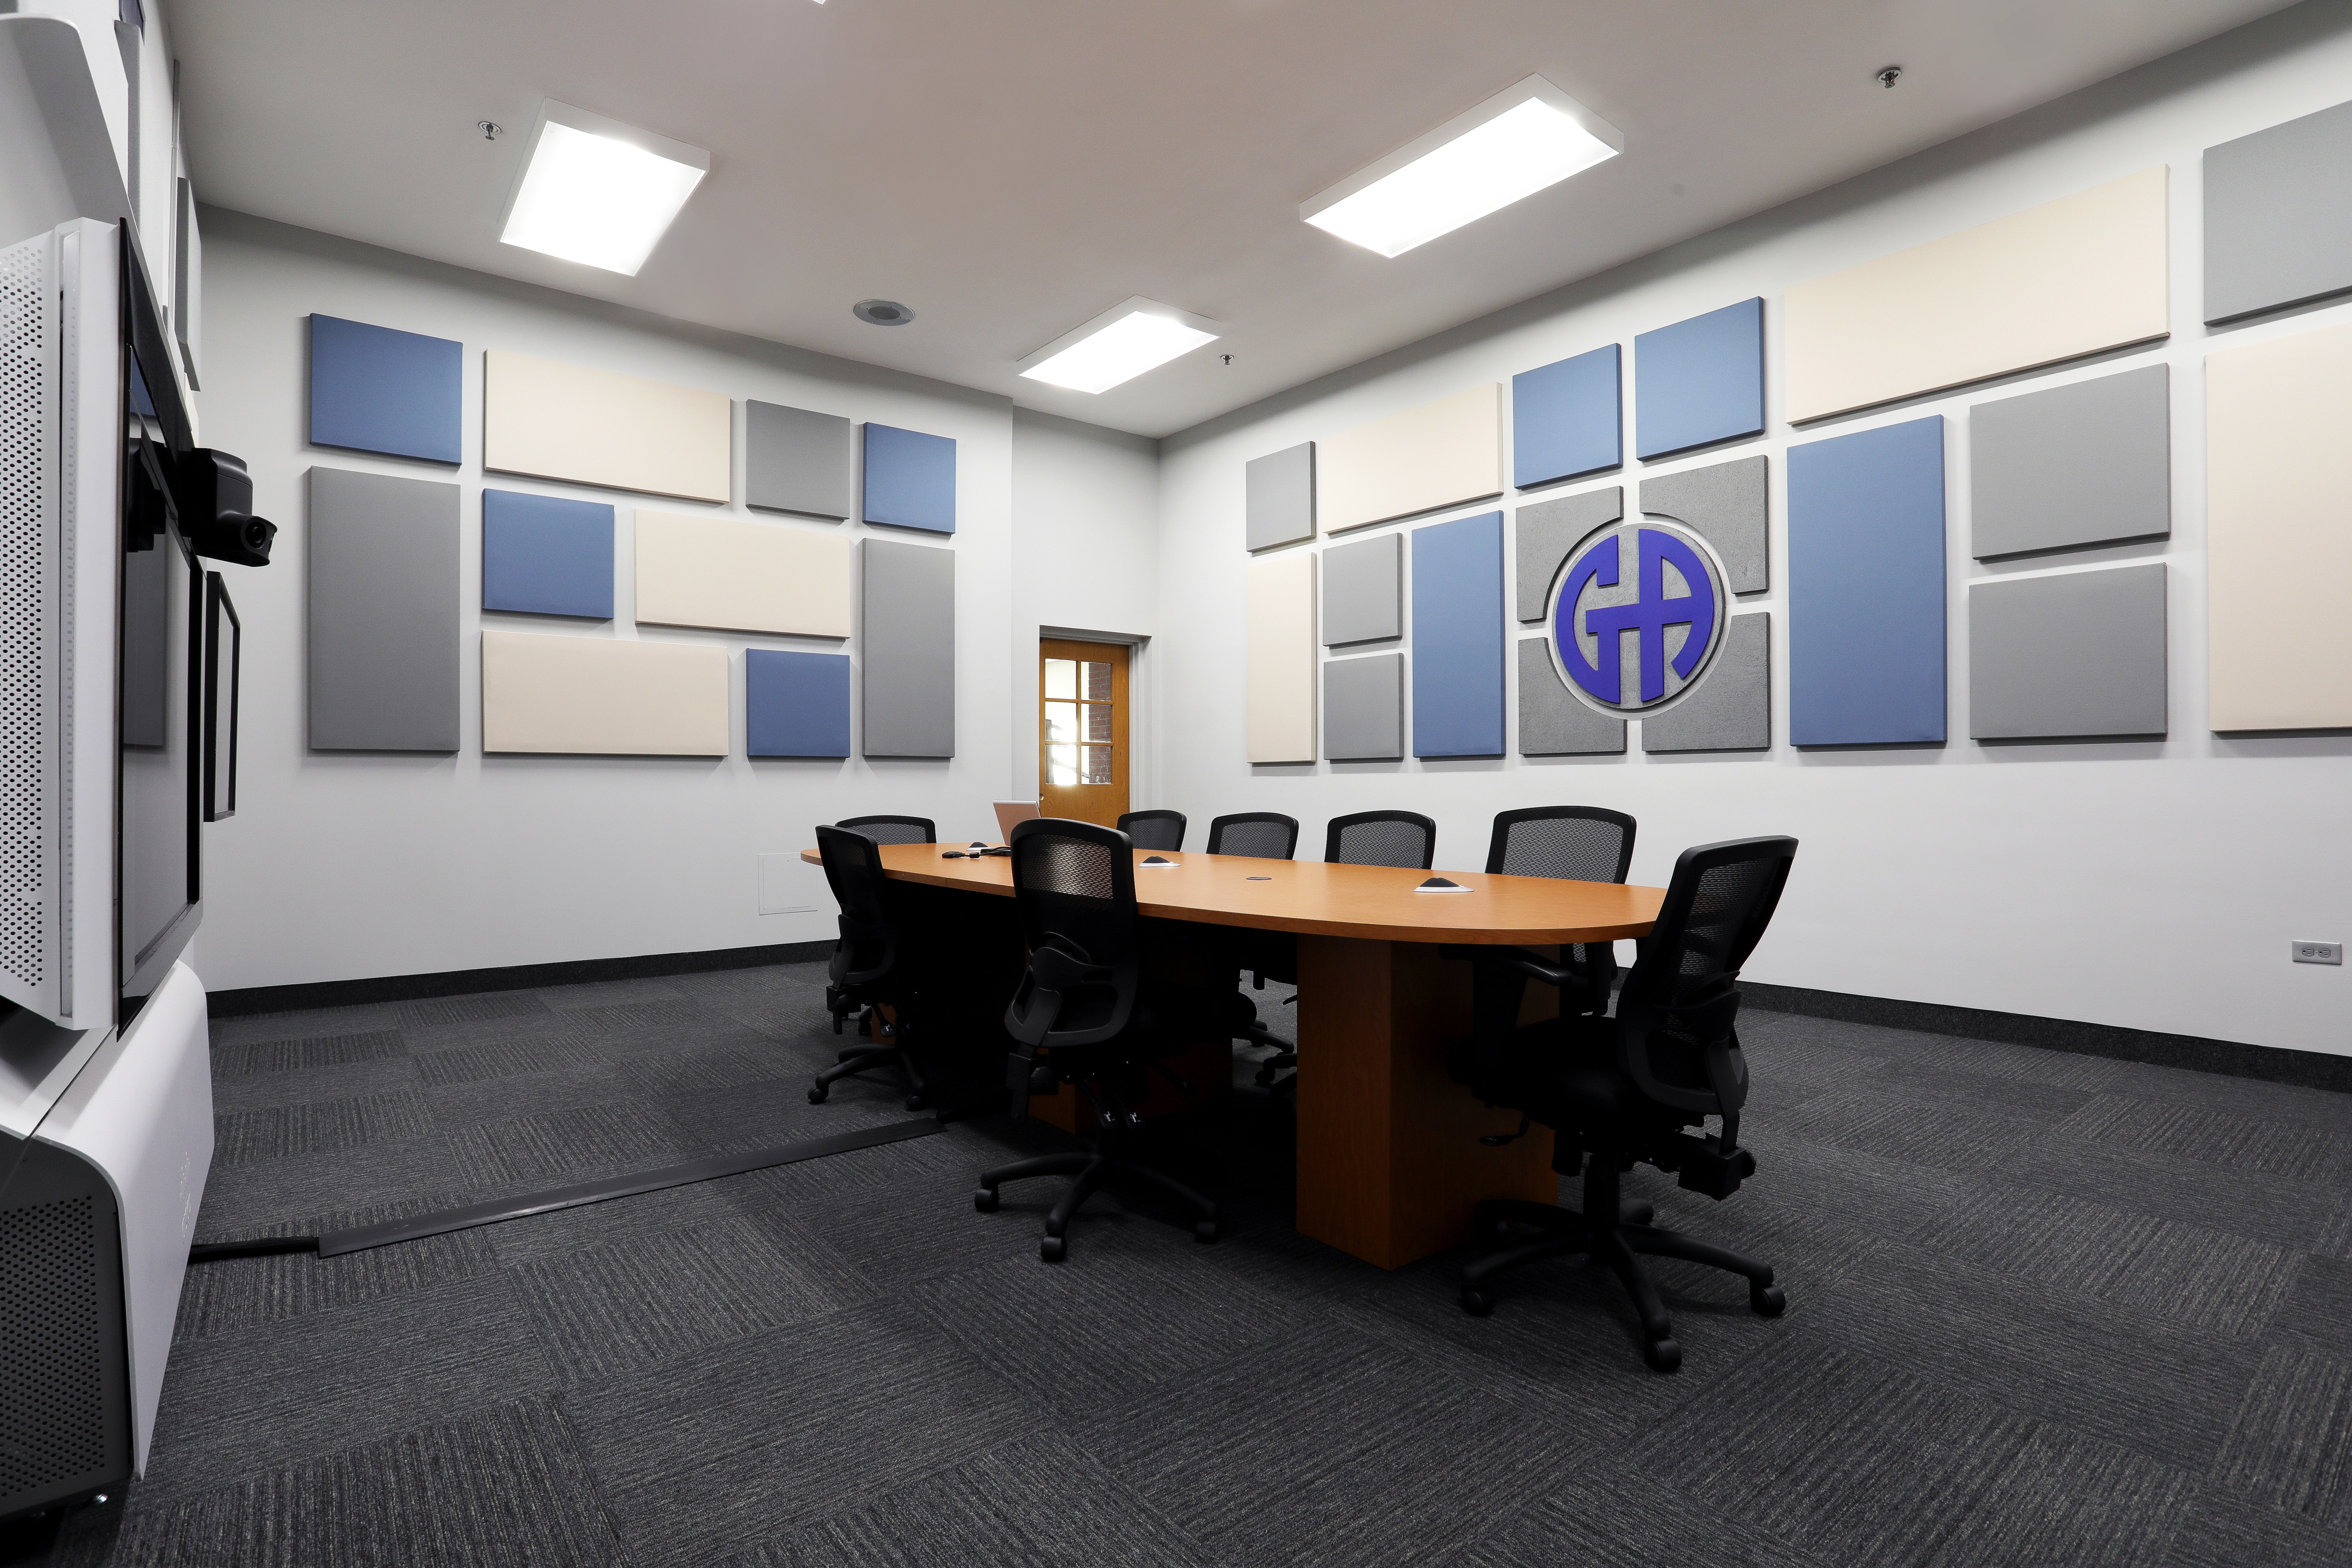 improving acoustics office open. For Expert Advice On Improving The Acoustics In Your Conference Room, Contact One Of Our Acoustic Specialists! Office Open C